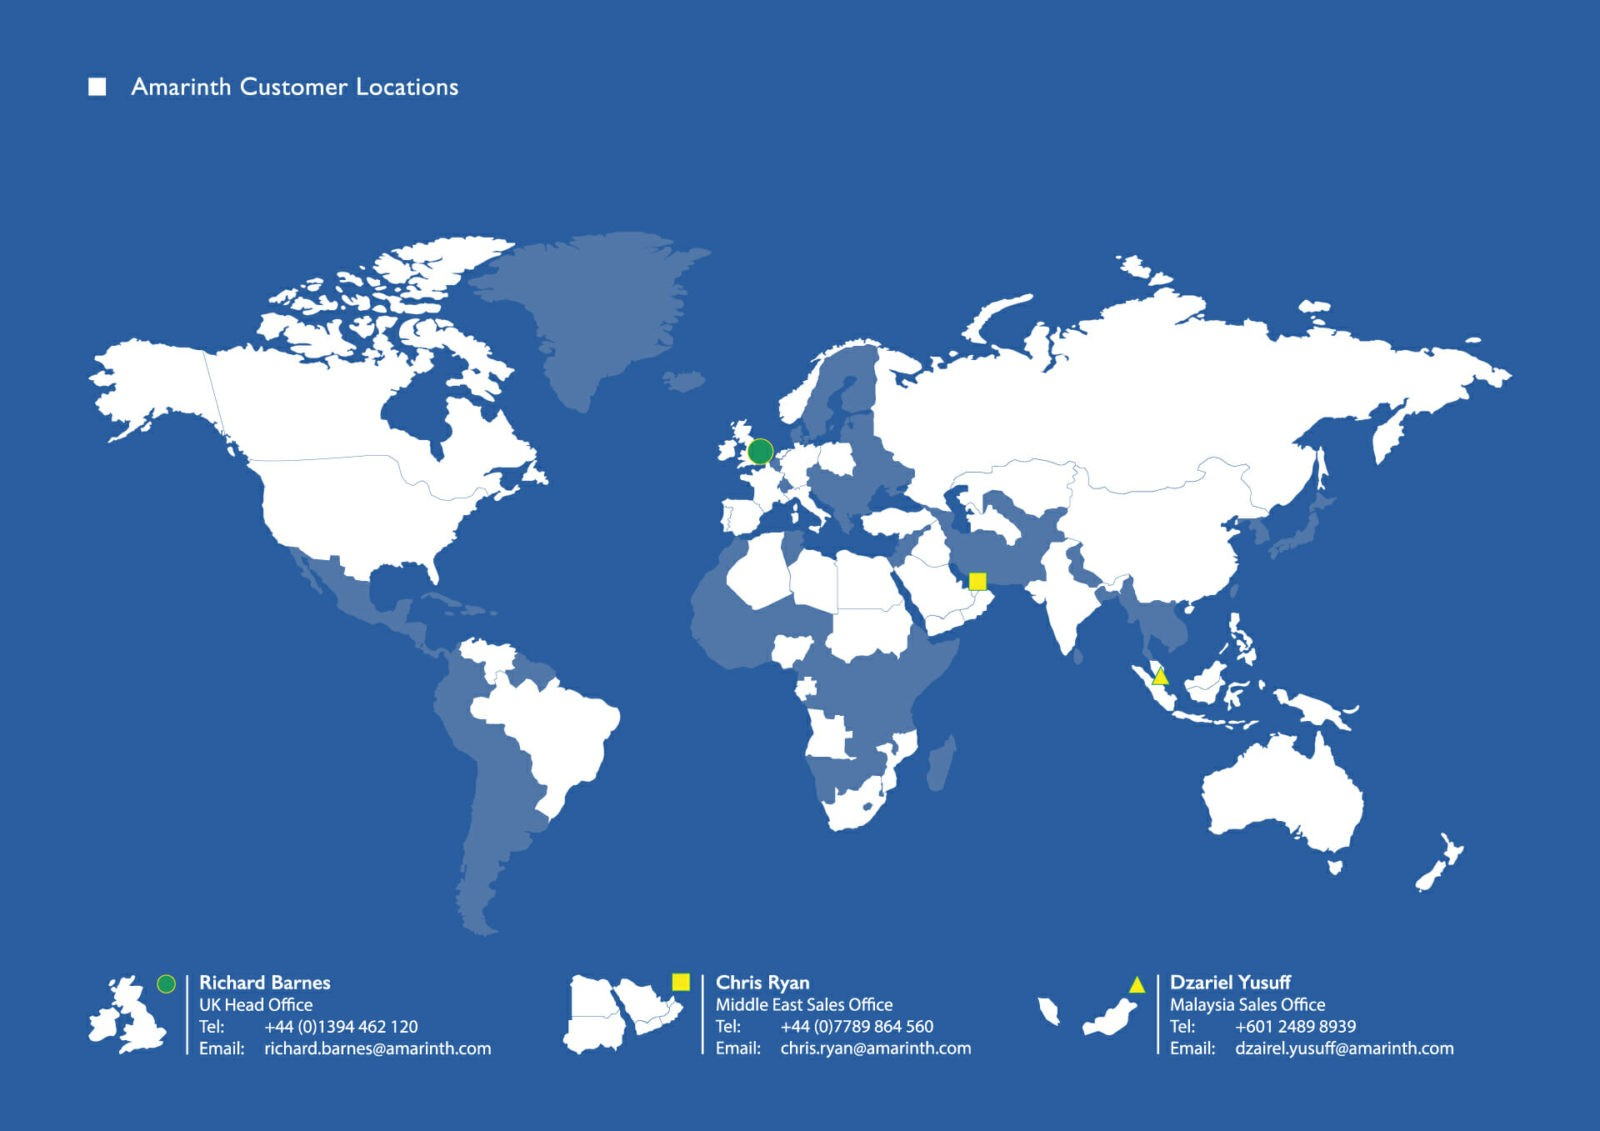 World locations of Amarinth manufacturing operations and clients